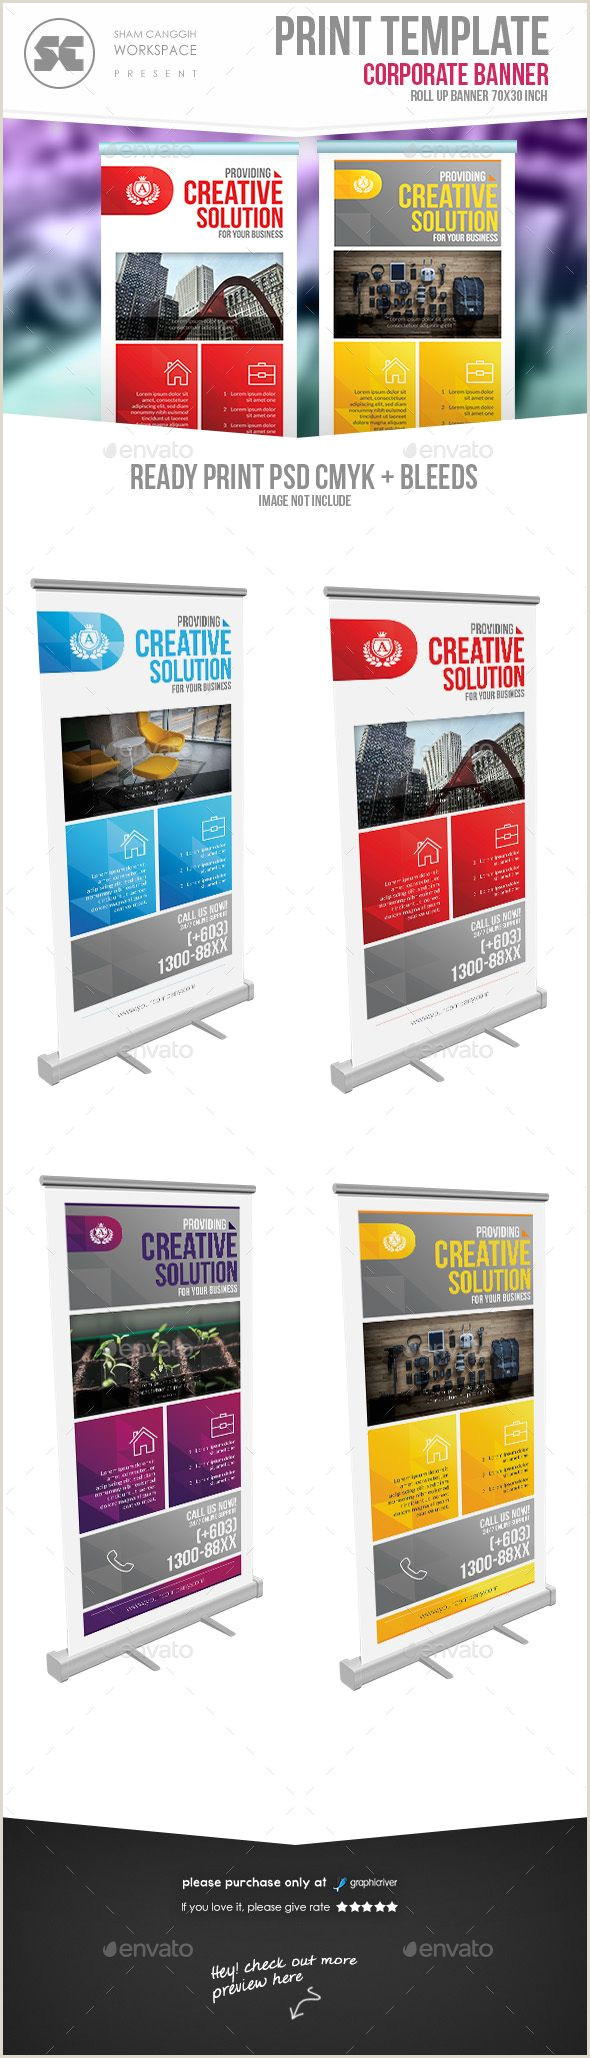 Pop Up Banner Examples Corporate Roll Up Banner